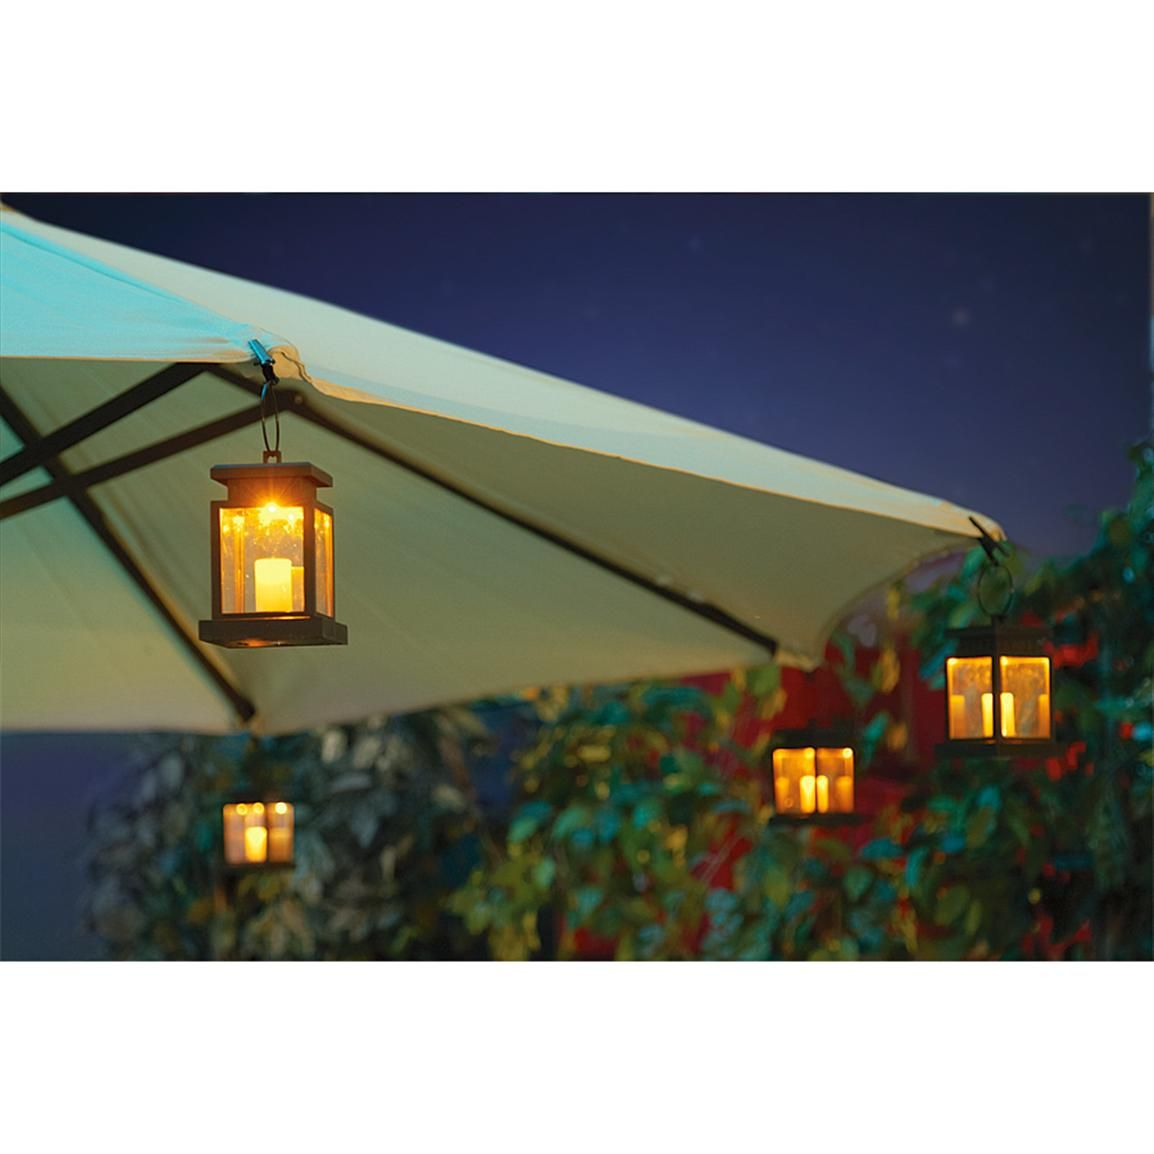 Solar Lights For Patio Umbrellas Amusing 4  Pkof Solar Patio Umbrella Clip Lights Patio Garden Review